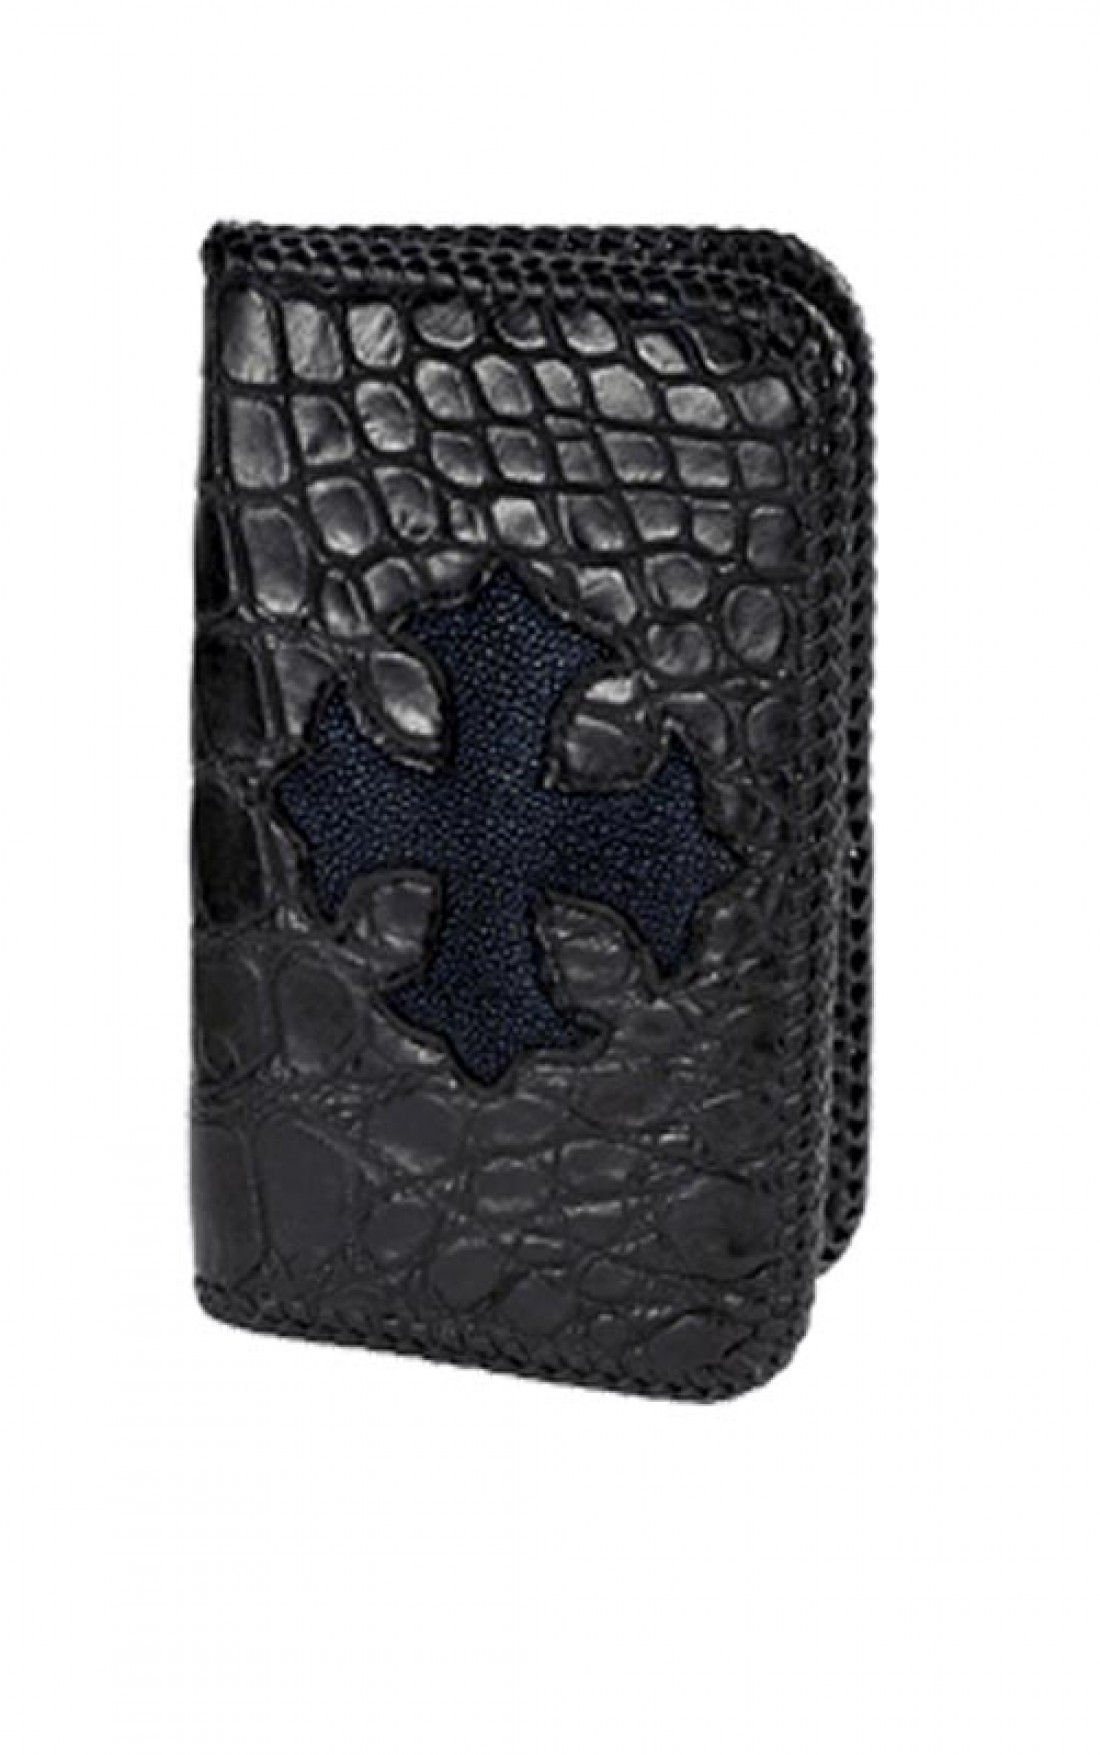 King Baby - Black Gator Wallet with a Stingray Cross (A50-2013)